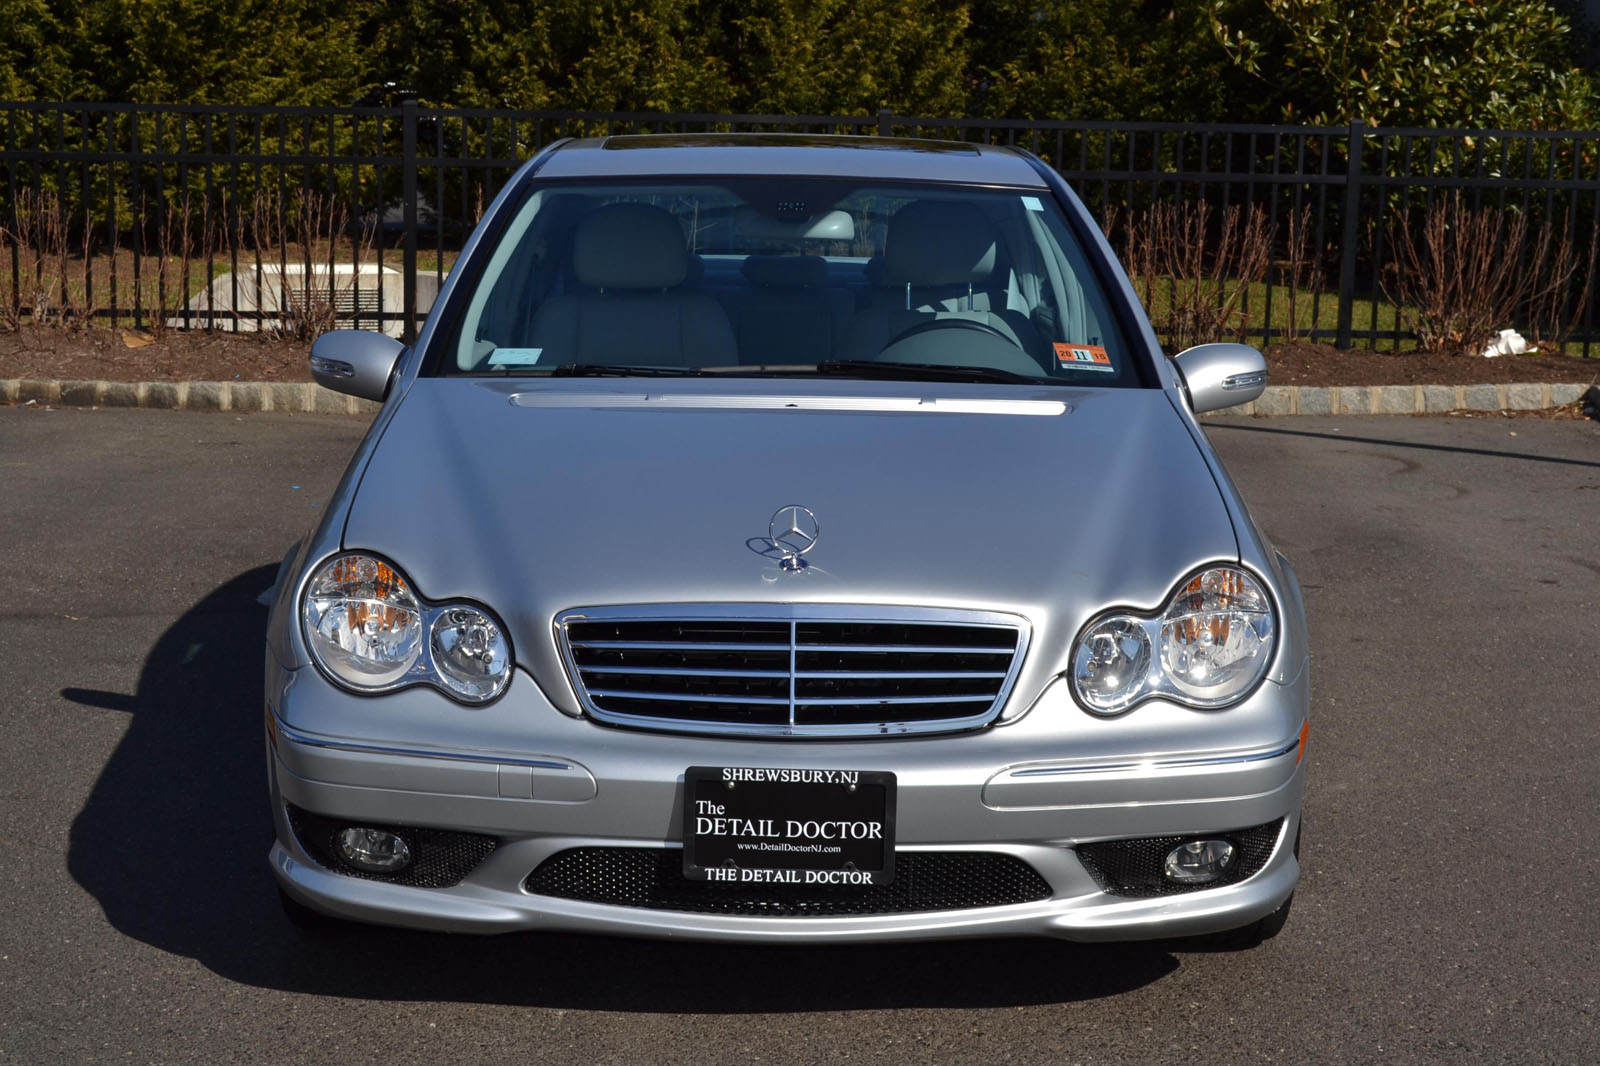 Make mercedes model c230 sport trim sport body type sedan exterior color metallic silver interior color grey mb tex engine 2 5 l v 6 cylinder